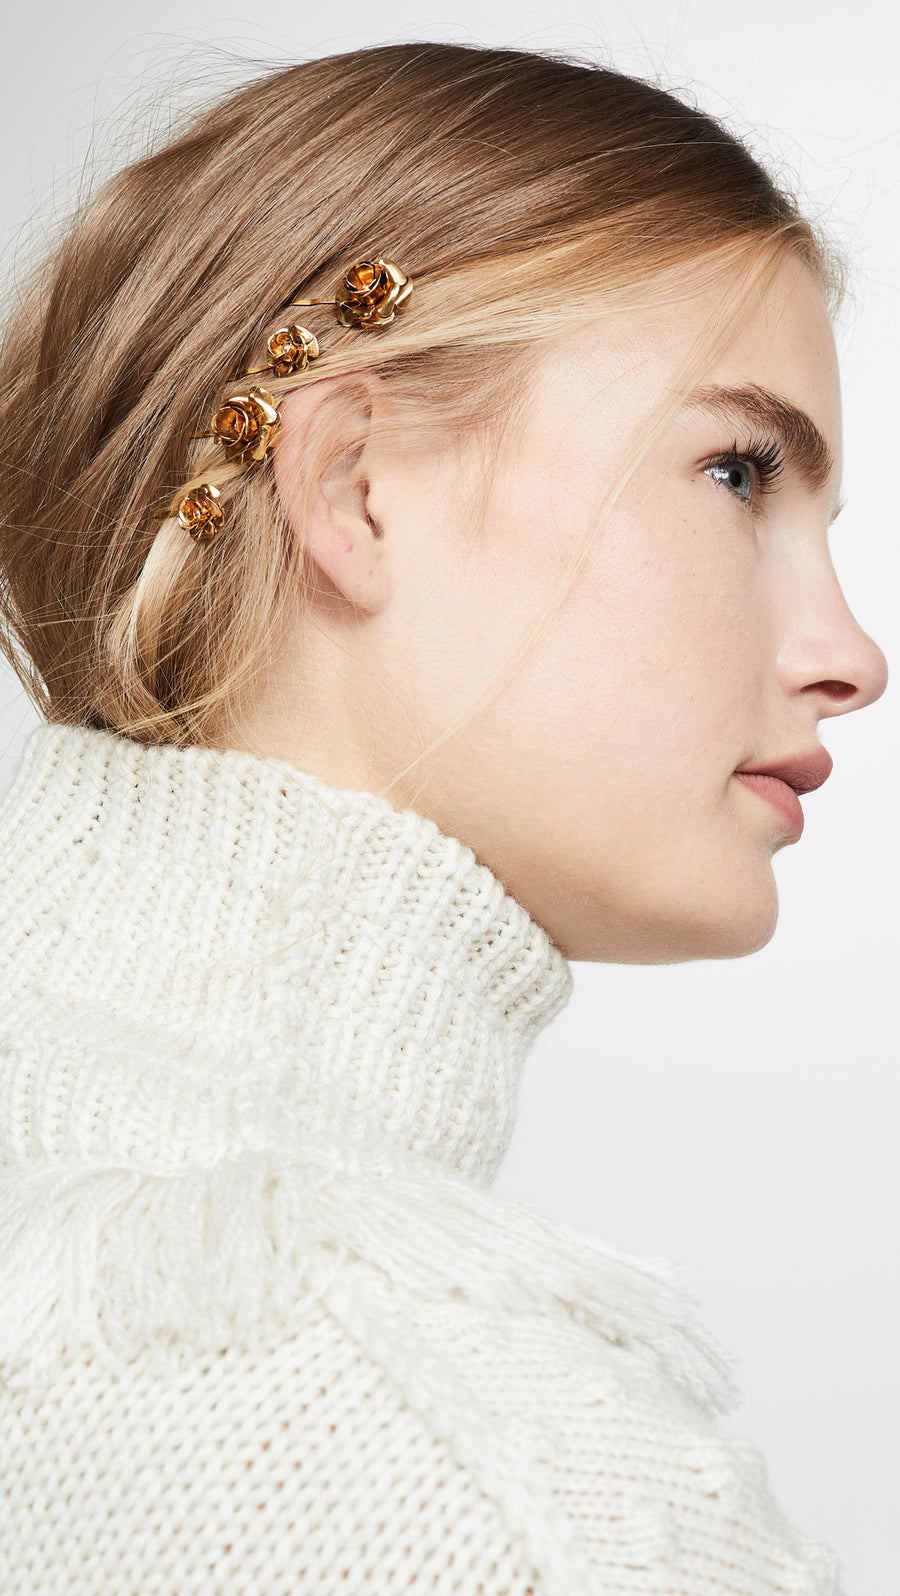 Allegra Bobby Pin - Millo Jewelry